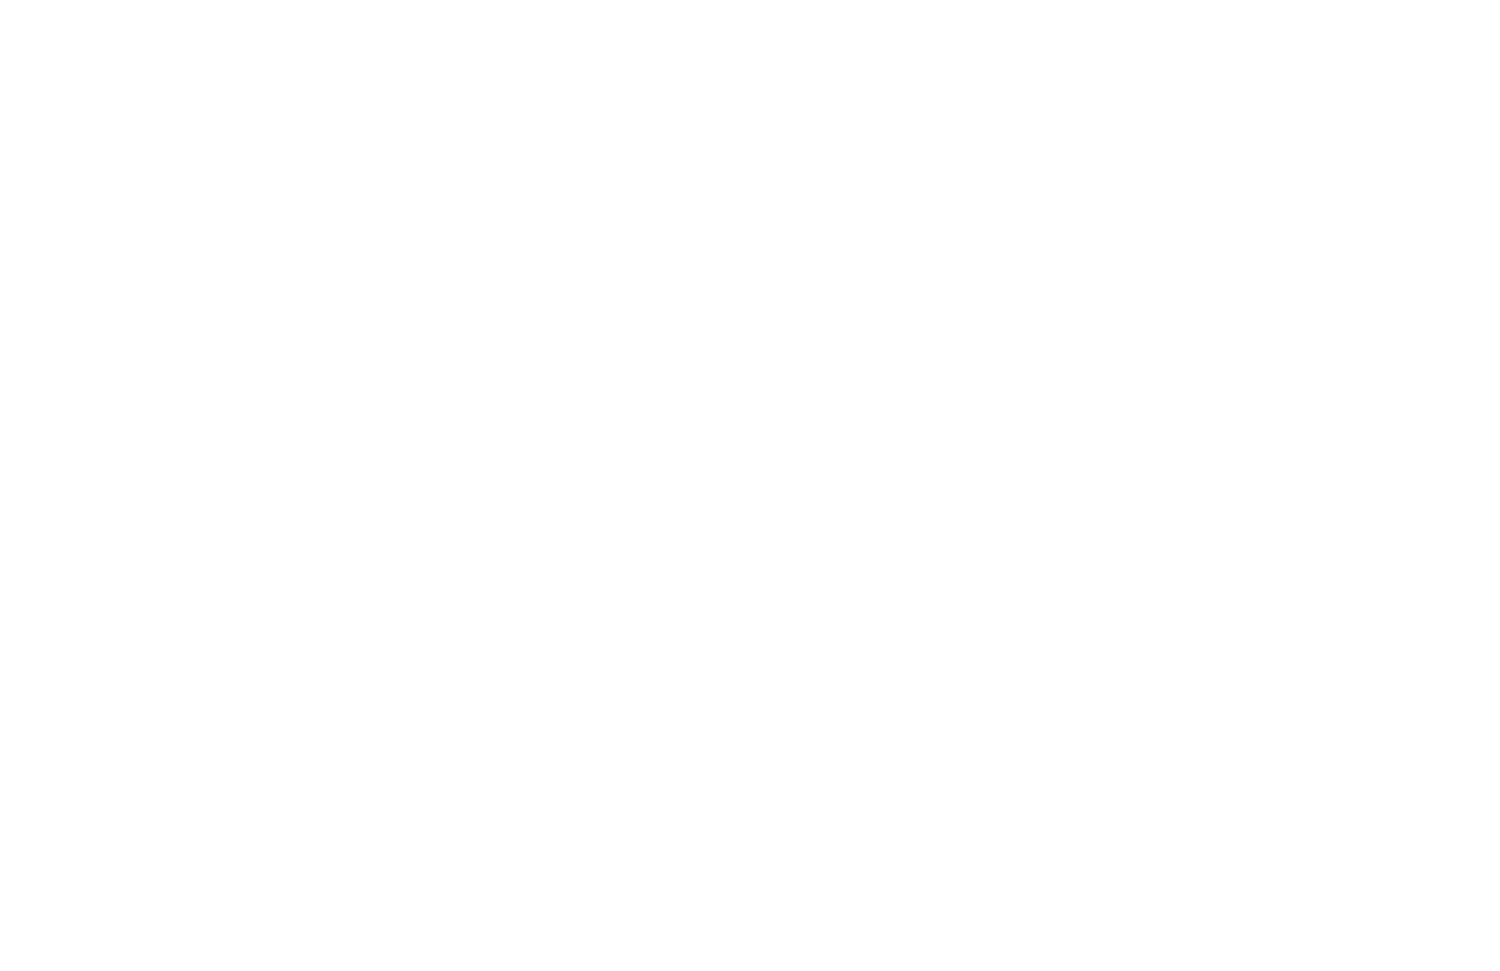 PLAYMAKERS GROUP